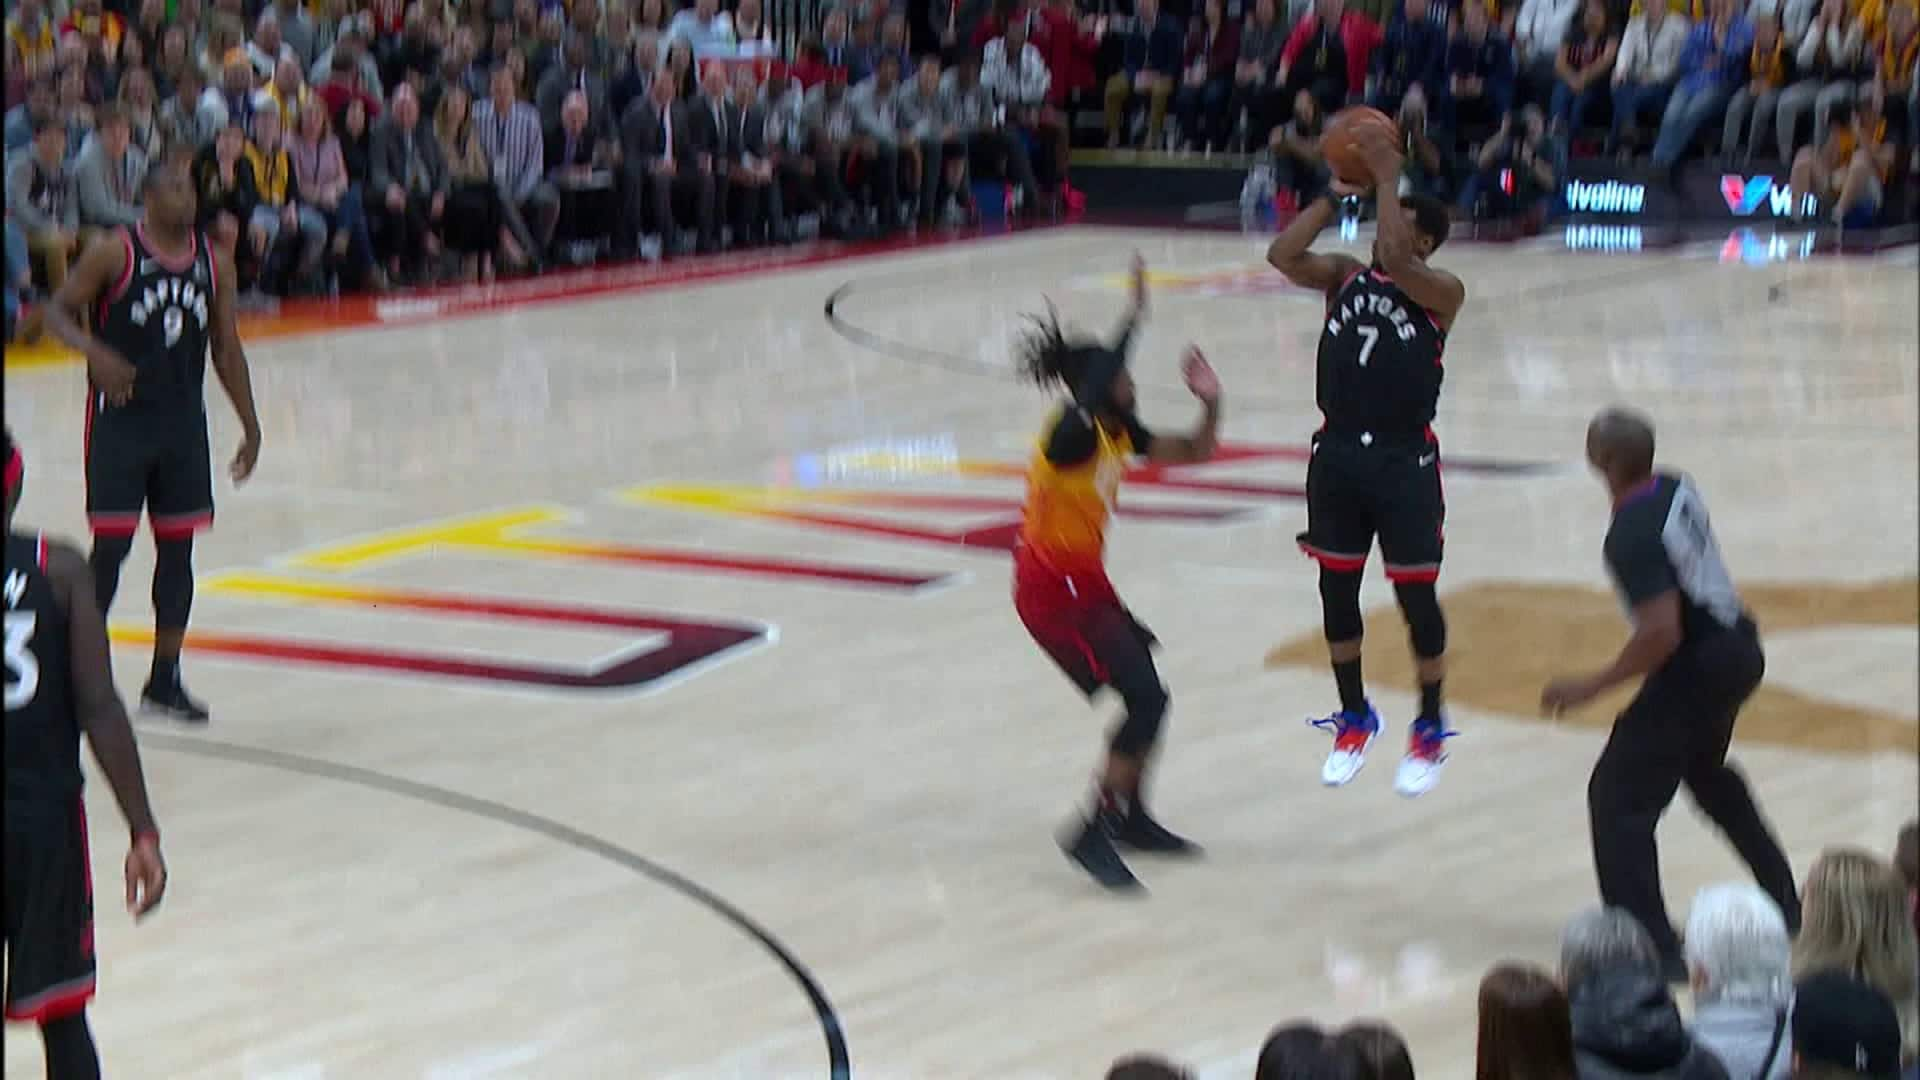 Raptors Highlights: Lowry Three - March 9, 2020